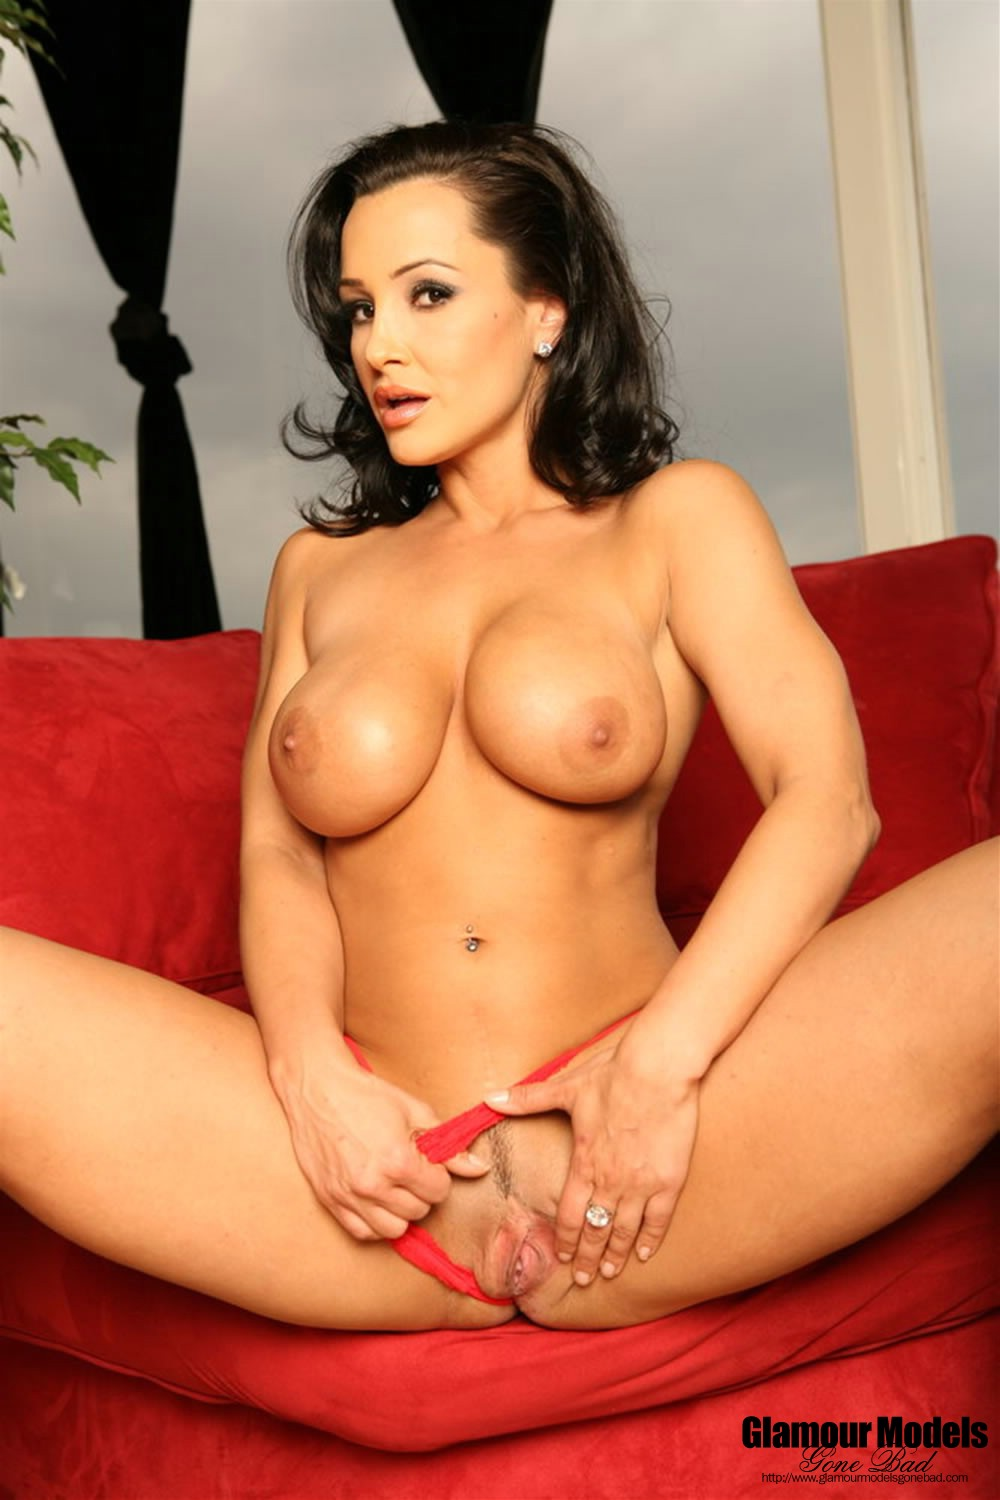 For that Lisa ann only naked understand